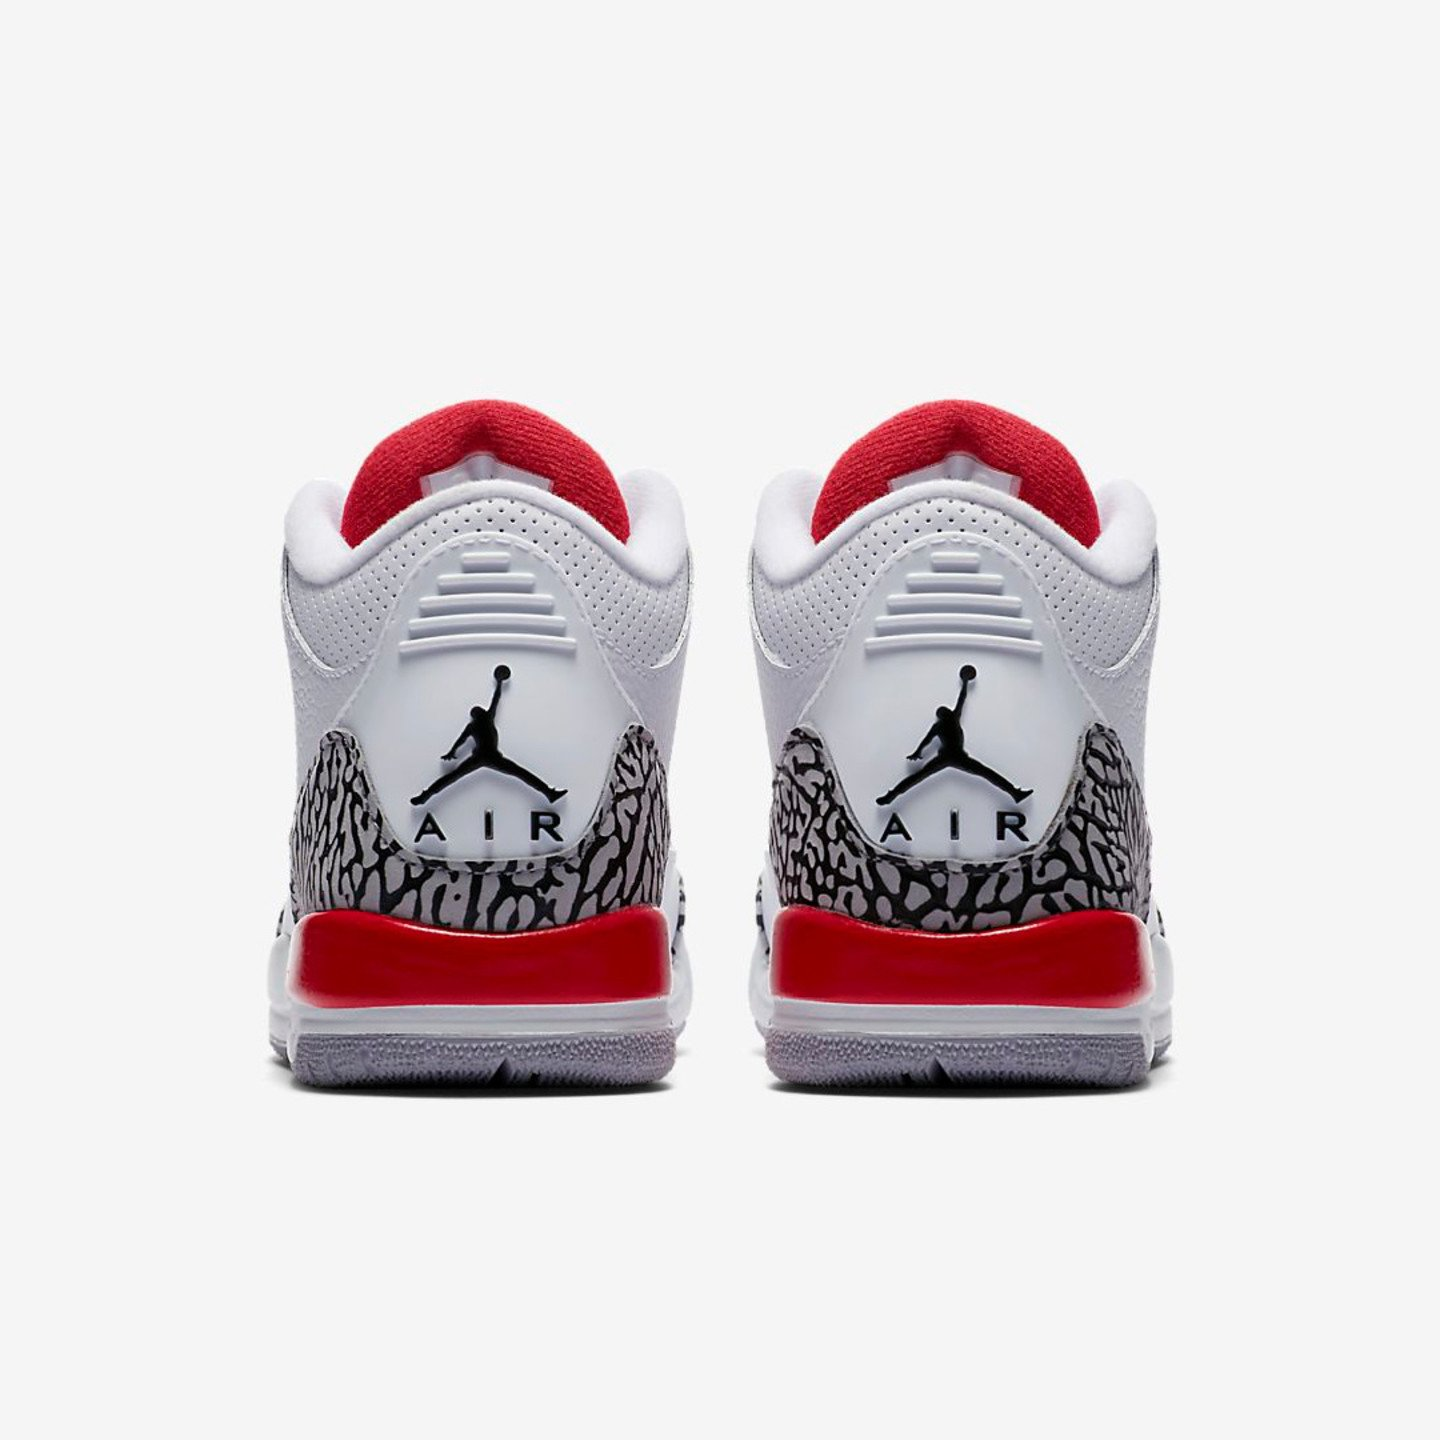 Jordan Air Jordan 3 Retro BG 'Katrina' White / Fire Red / Cement Grey / Black 398614-116